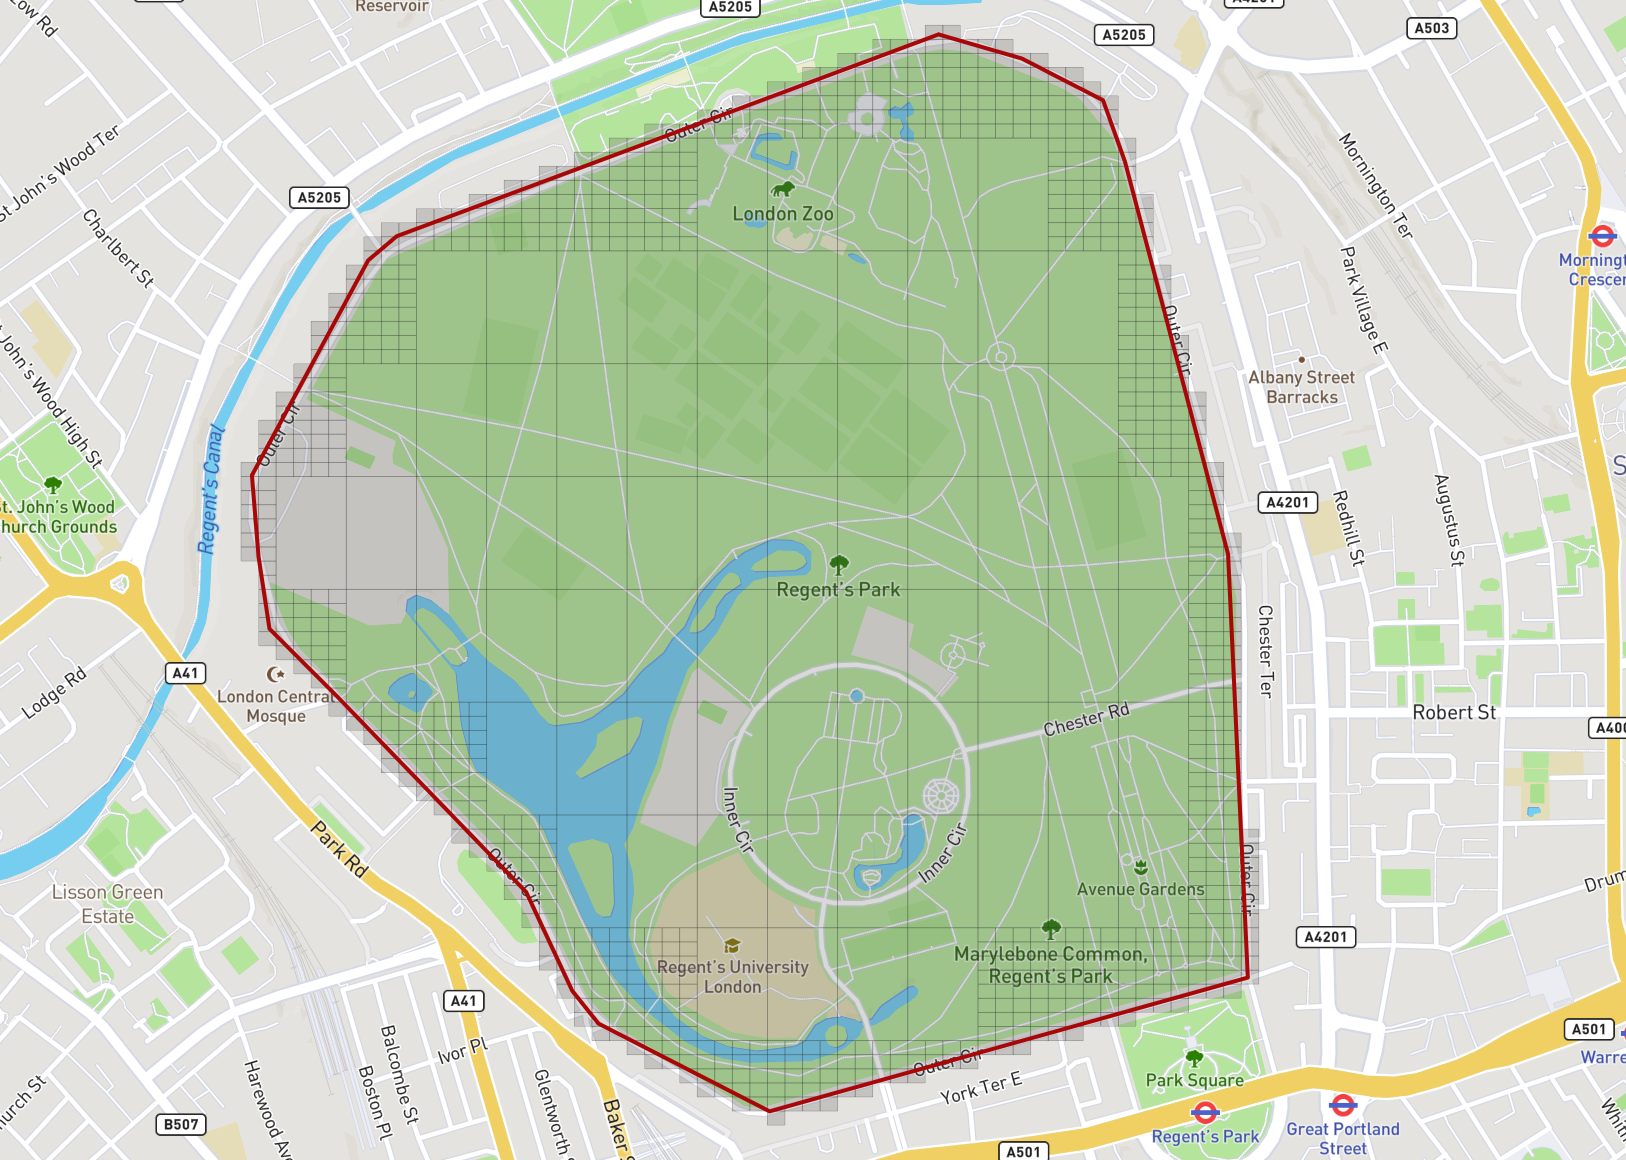 Filling a Geofence with Geohashes